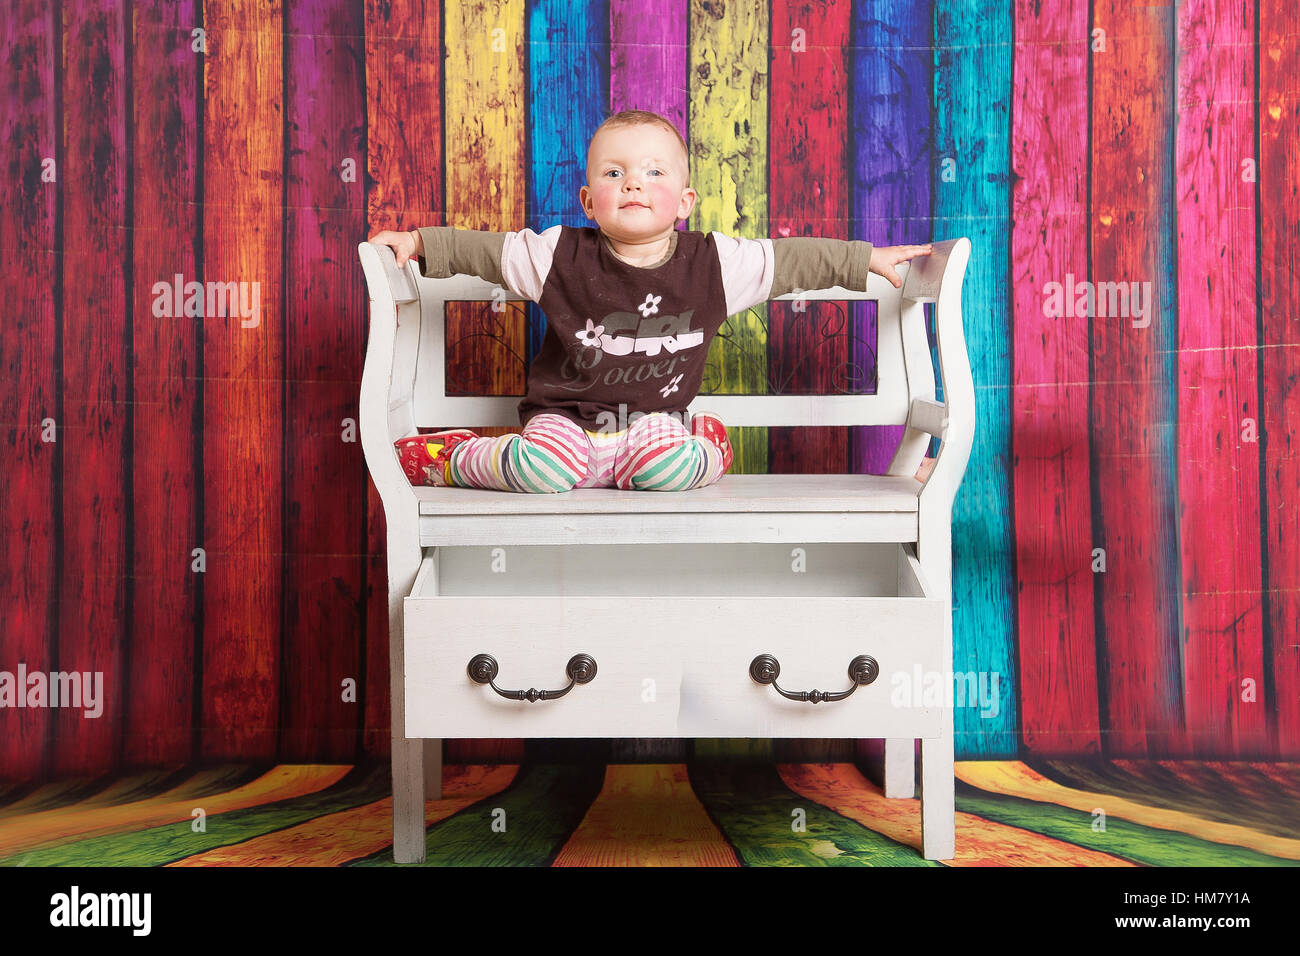 Portrait of baby girl sitting on Thon Thonnet chair in front of color full background - Stock Image